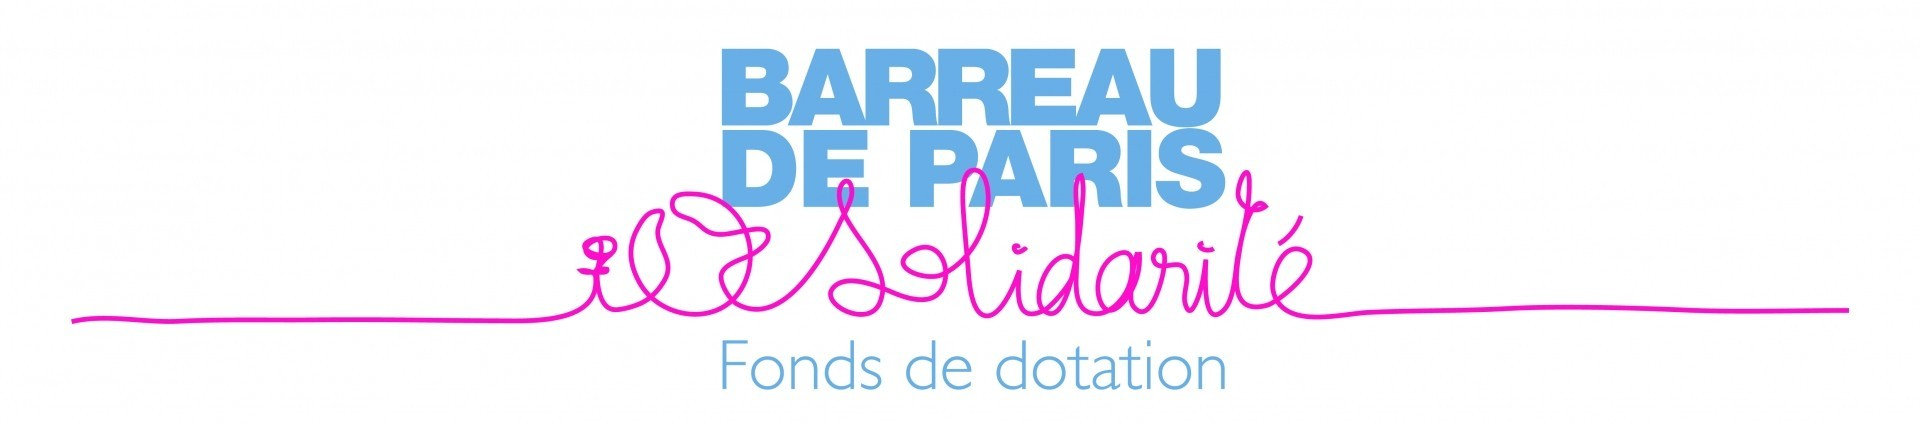 Barreau de Paris Solidarité